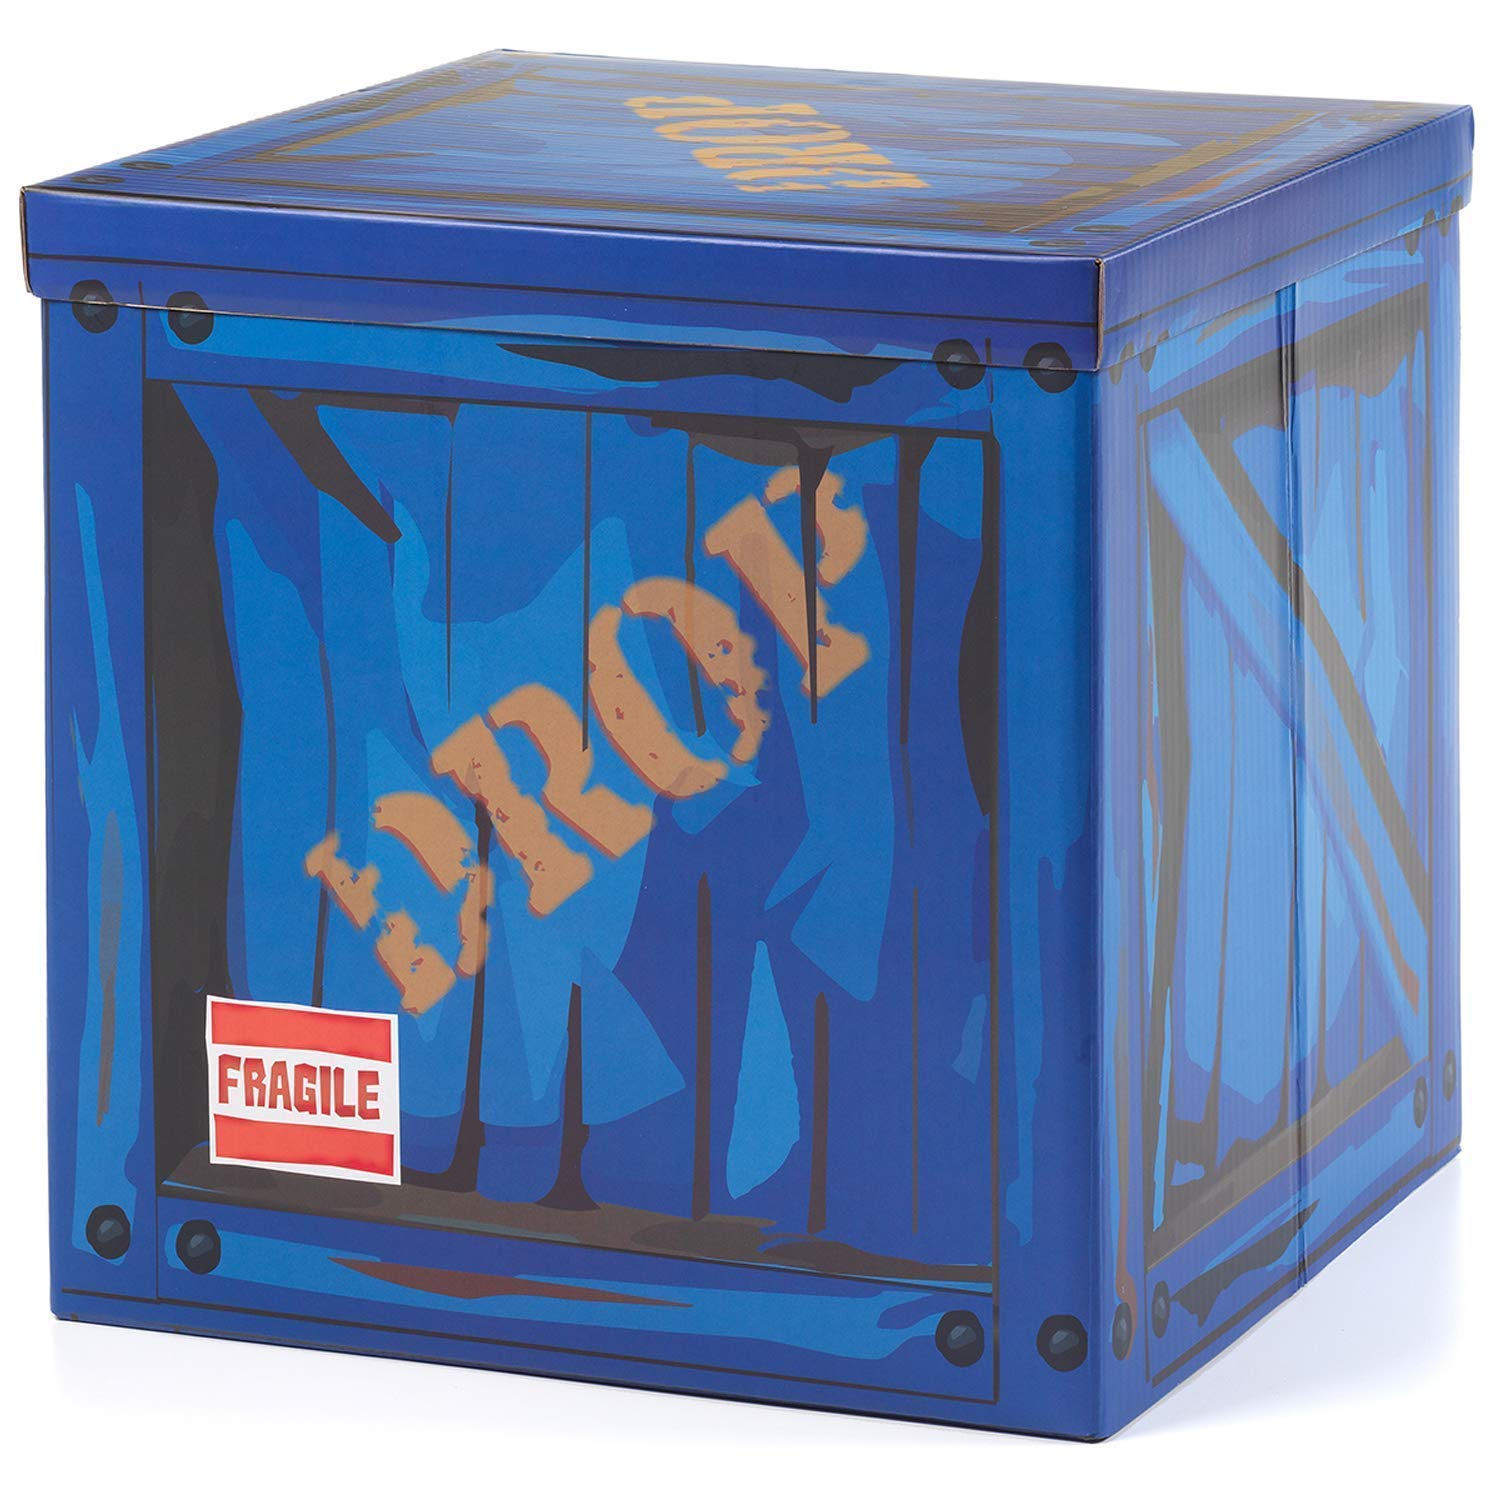 """Large Loot Drop Box Accessory (14"""" x 14"""" x 14"""") - Goes with Merch Like Pickaxes, Guns, Costumes - Perfect Decoration Gift for Gamers, Boys, Parties"""